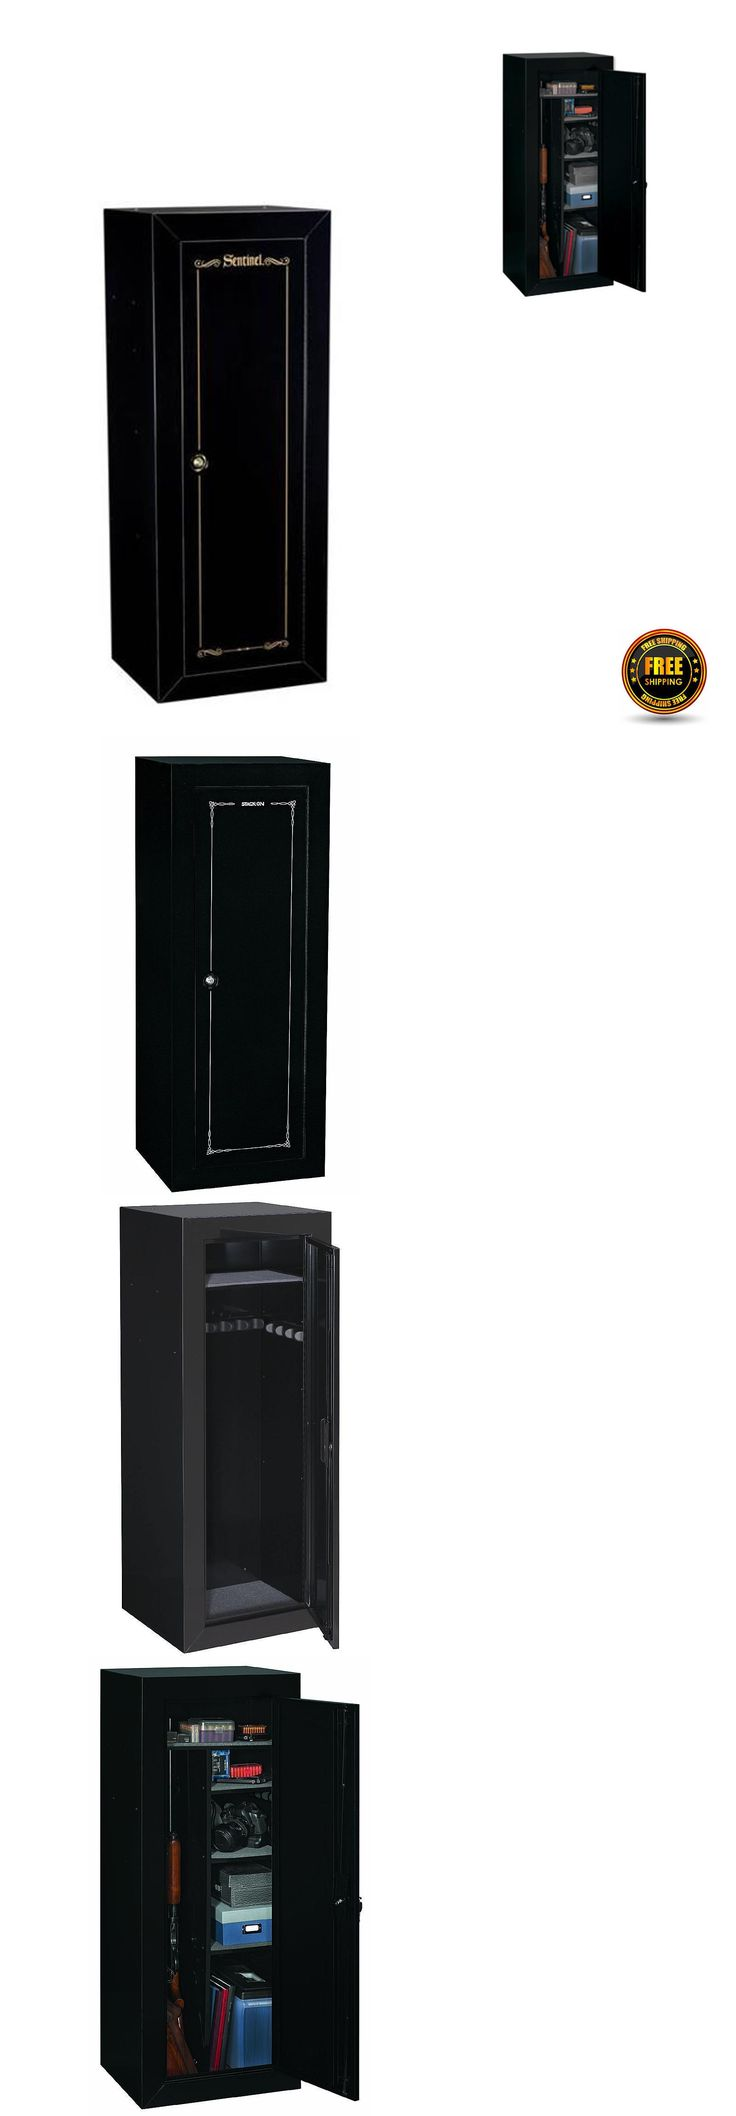 Cabinets and Safes 177877: Stack On Gun Safes And Vaults For Home 18 Steel Security Cabinet Storage Rifle BUY IT NOW ONLY: $217.96